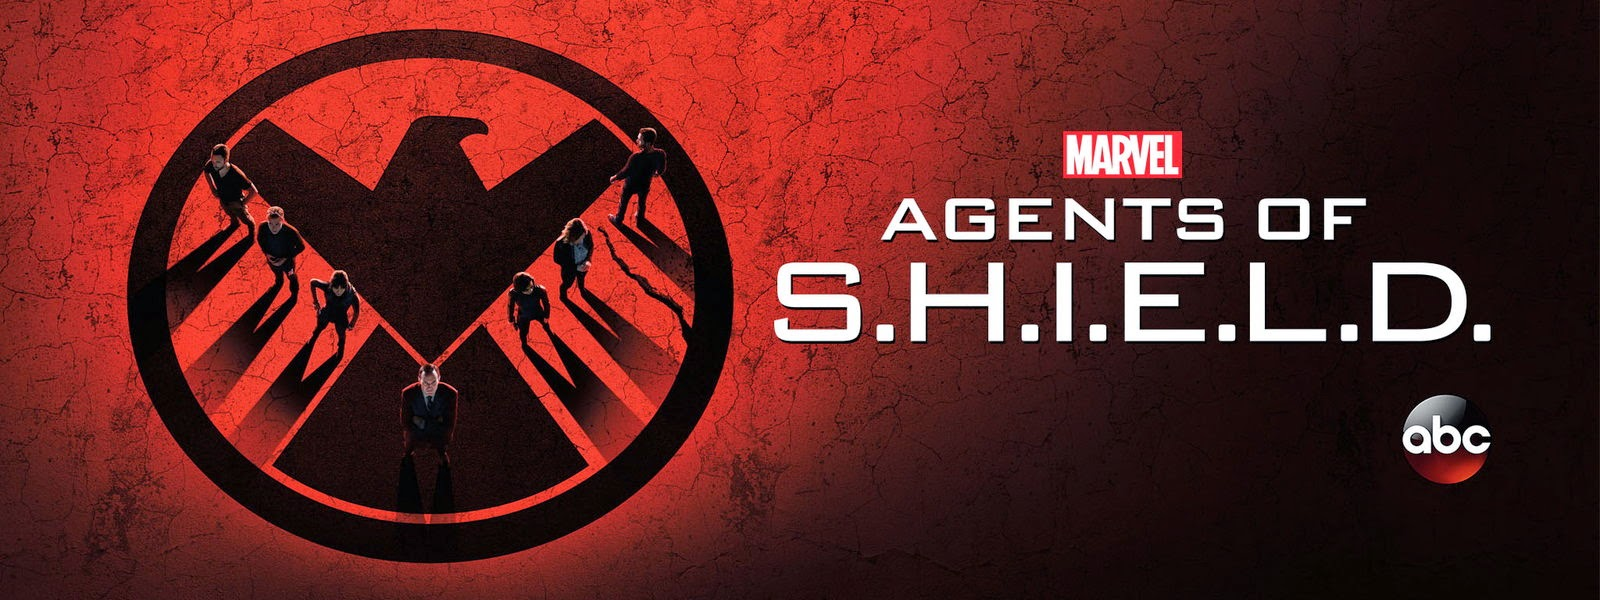 Agents of SHIELD - Episode 2.08 - The Things We Bury - Press Release